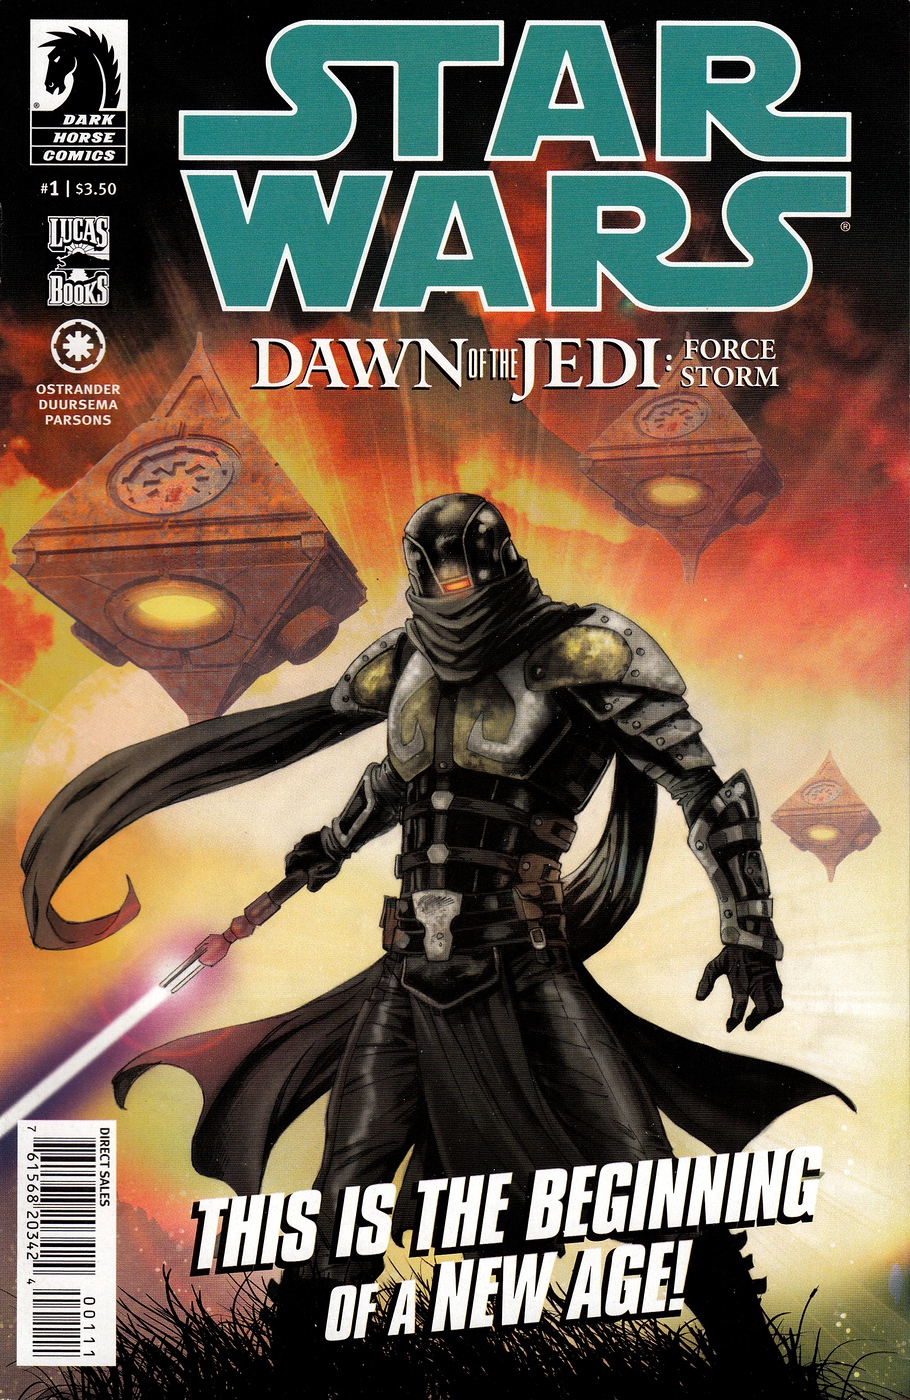 Dawn of the Jedi Force Storm #1